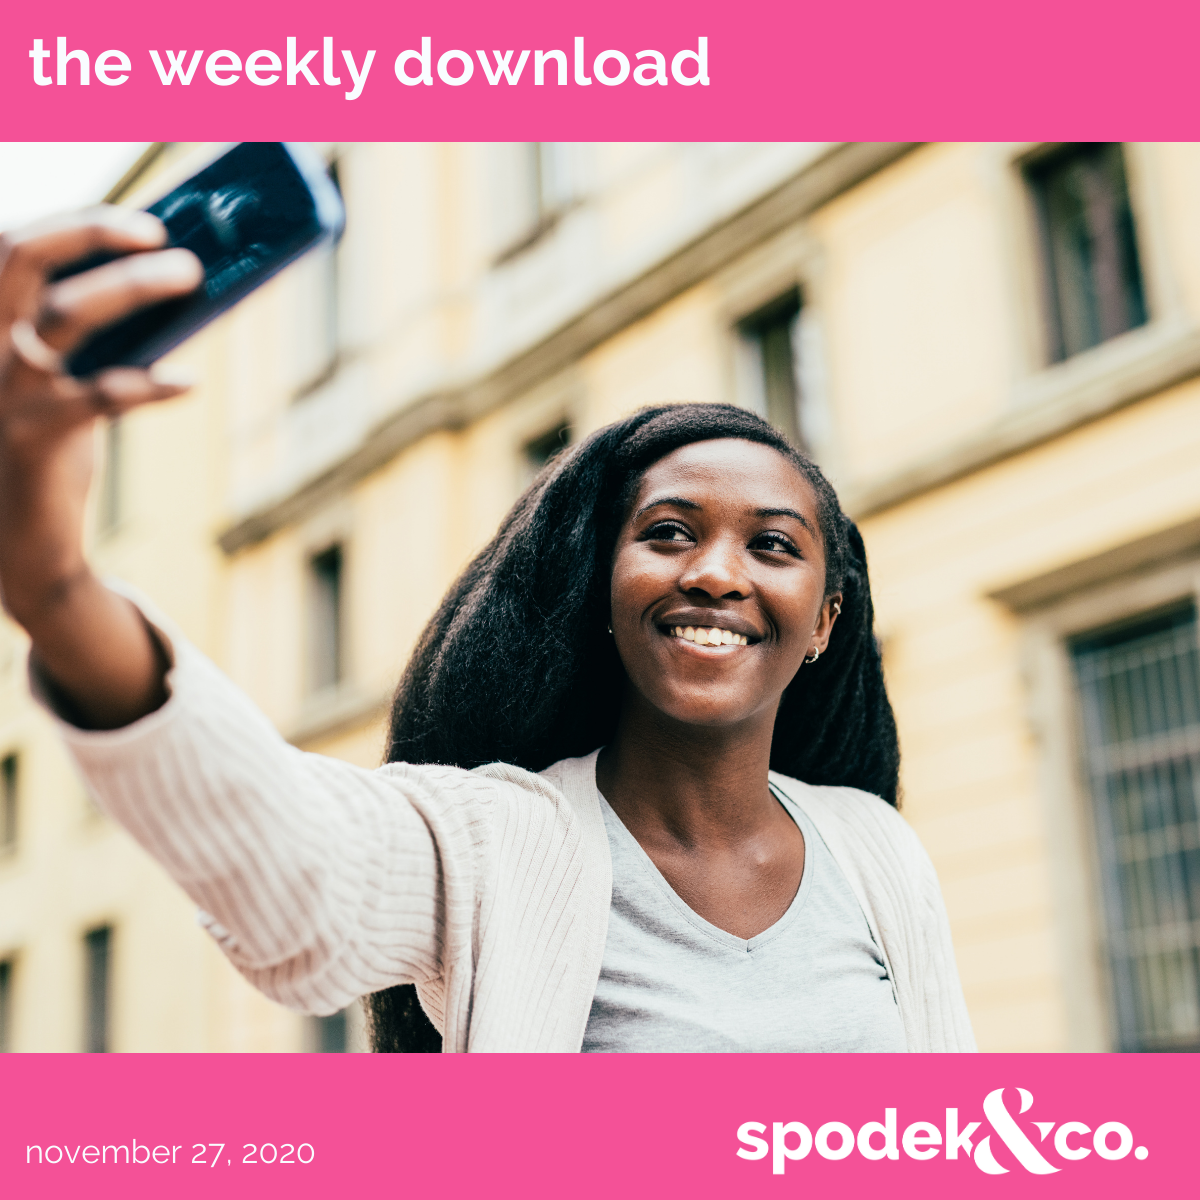 The Weekly Download – November 27, 2020